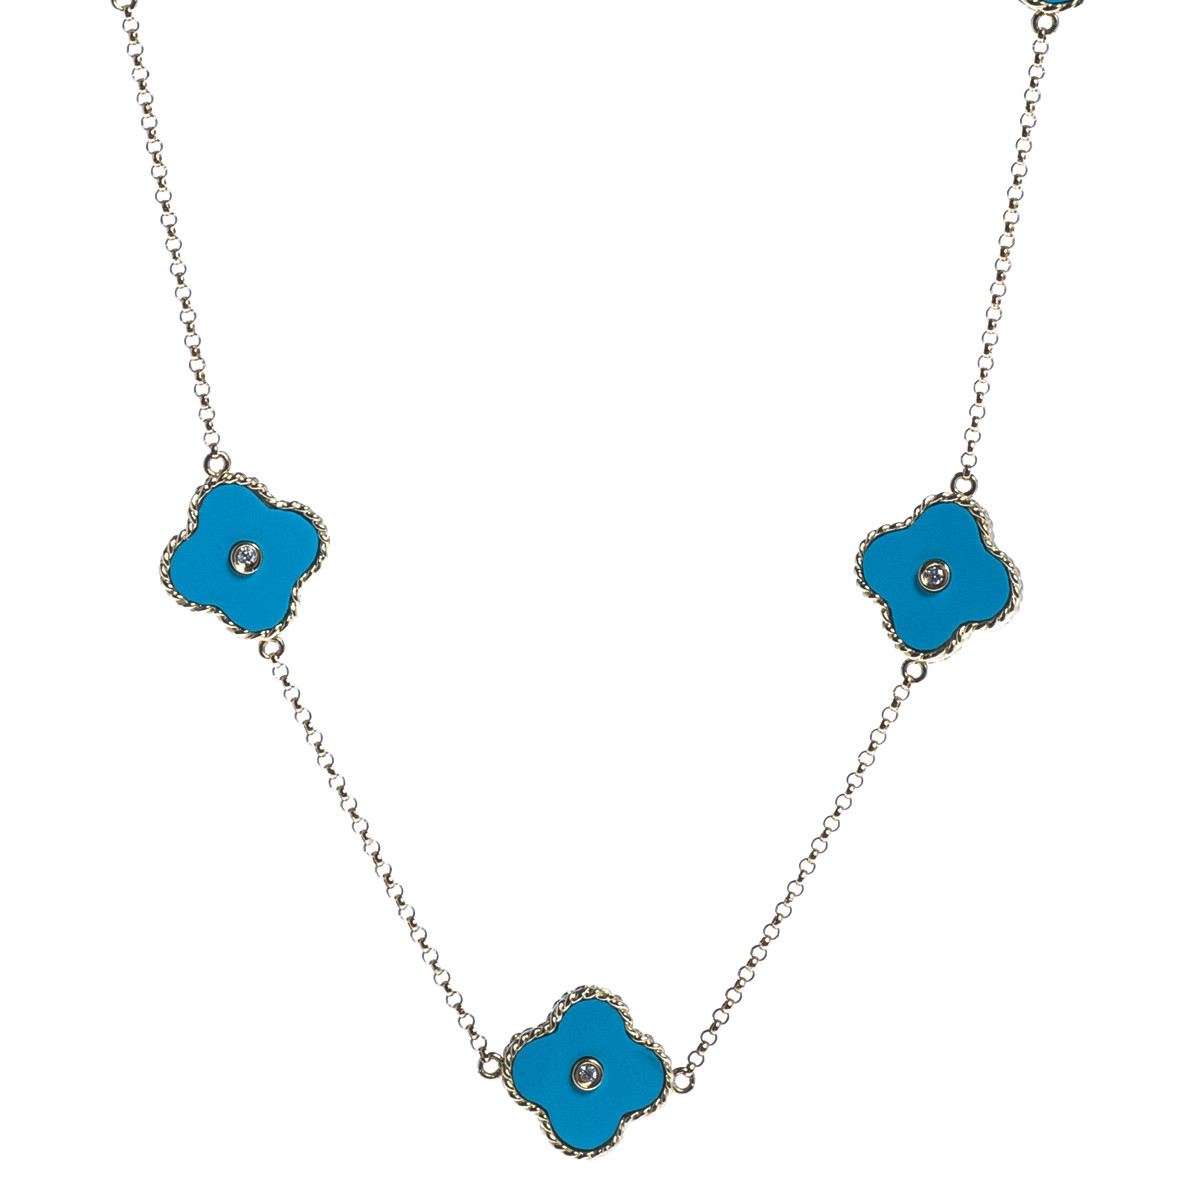 Vintage Synthetic Turquoise & Diamond Clover Necklace